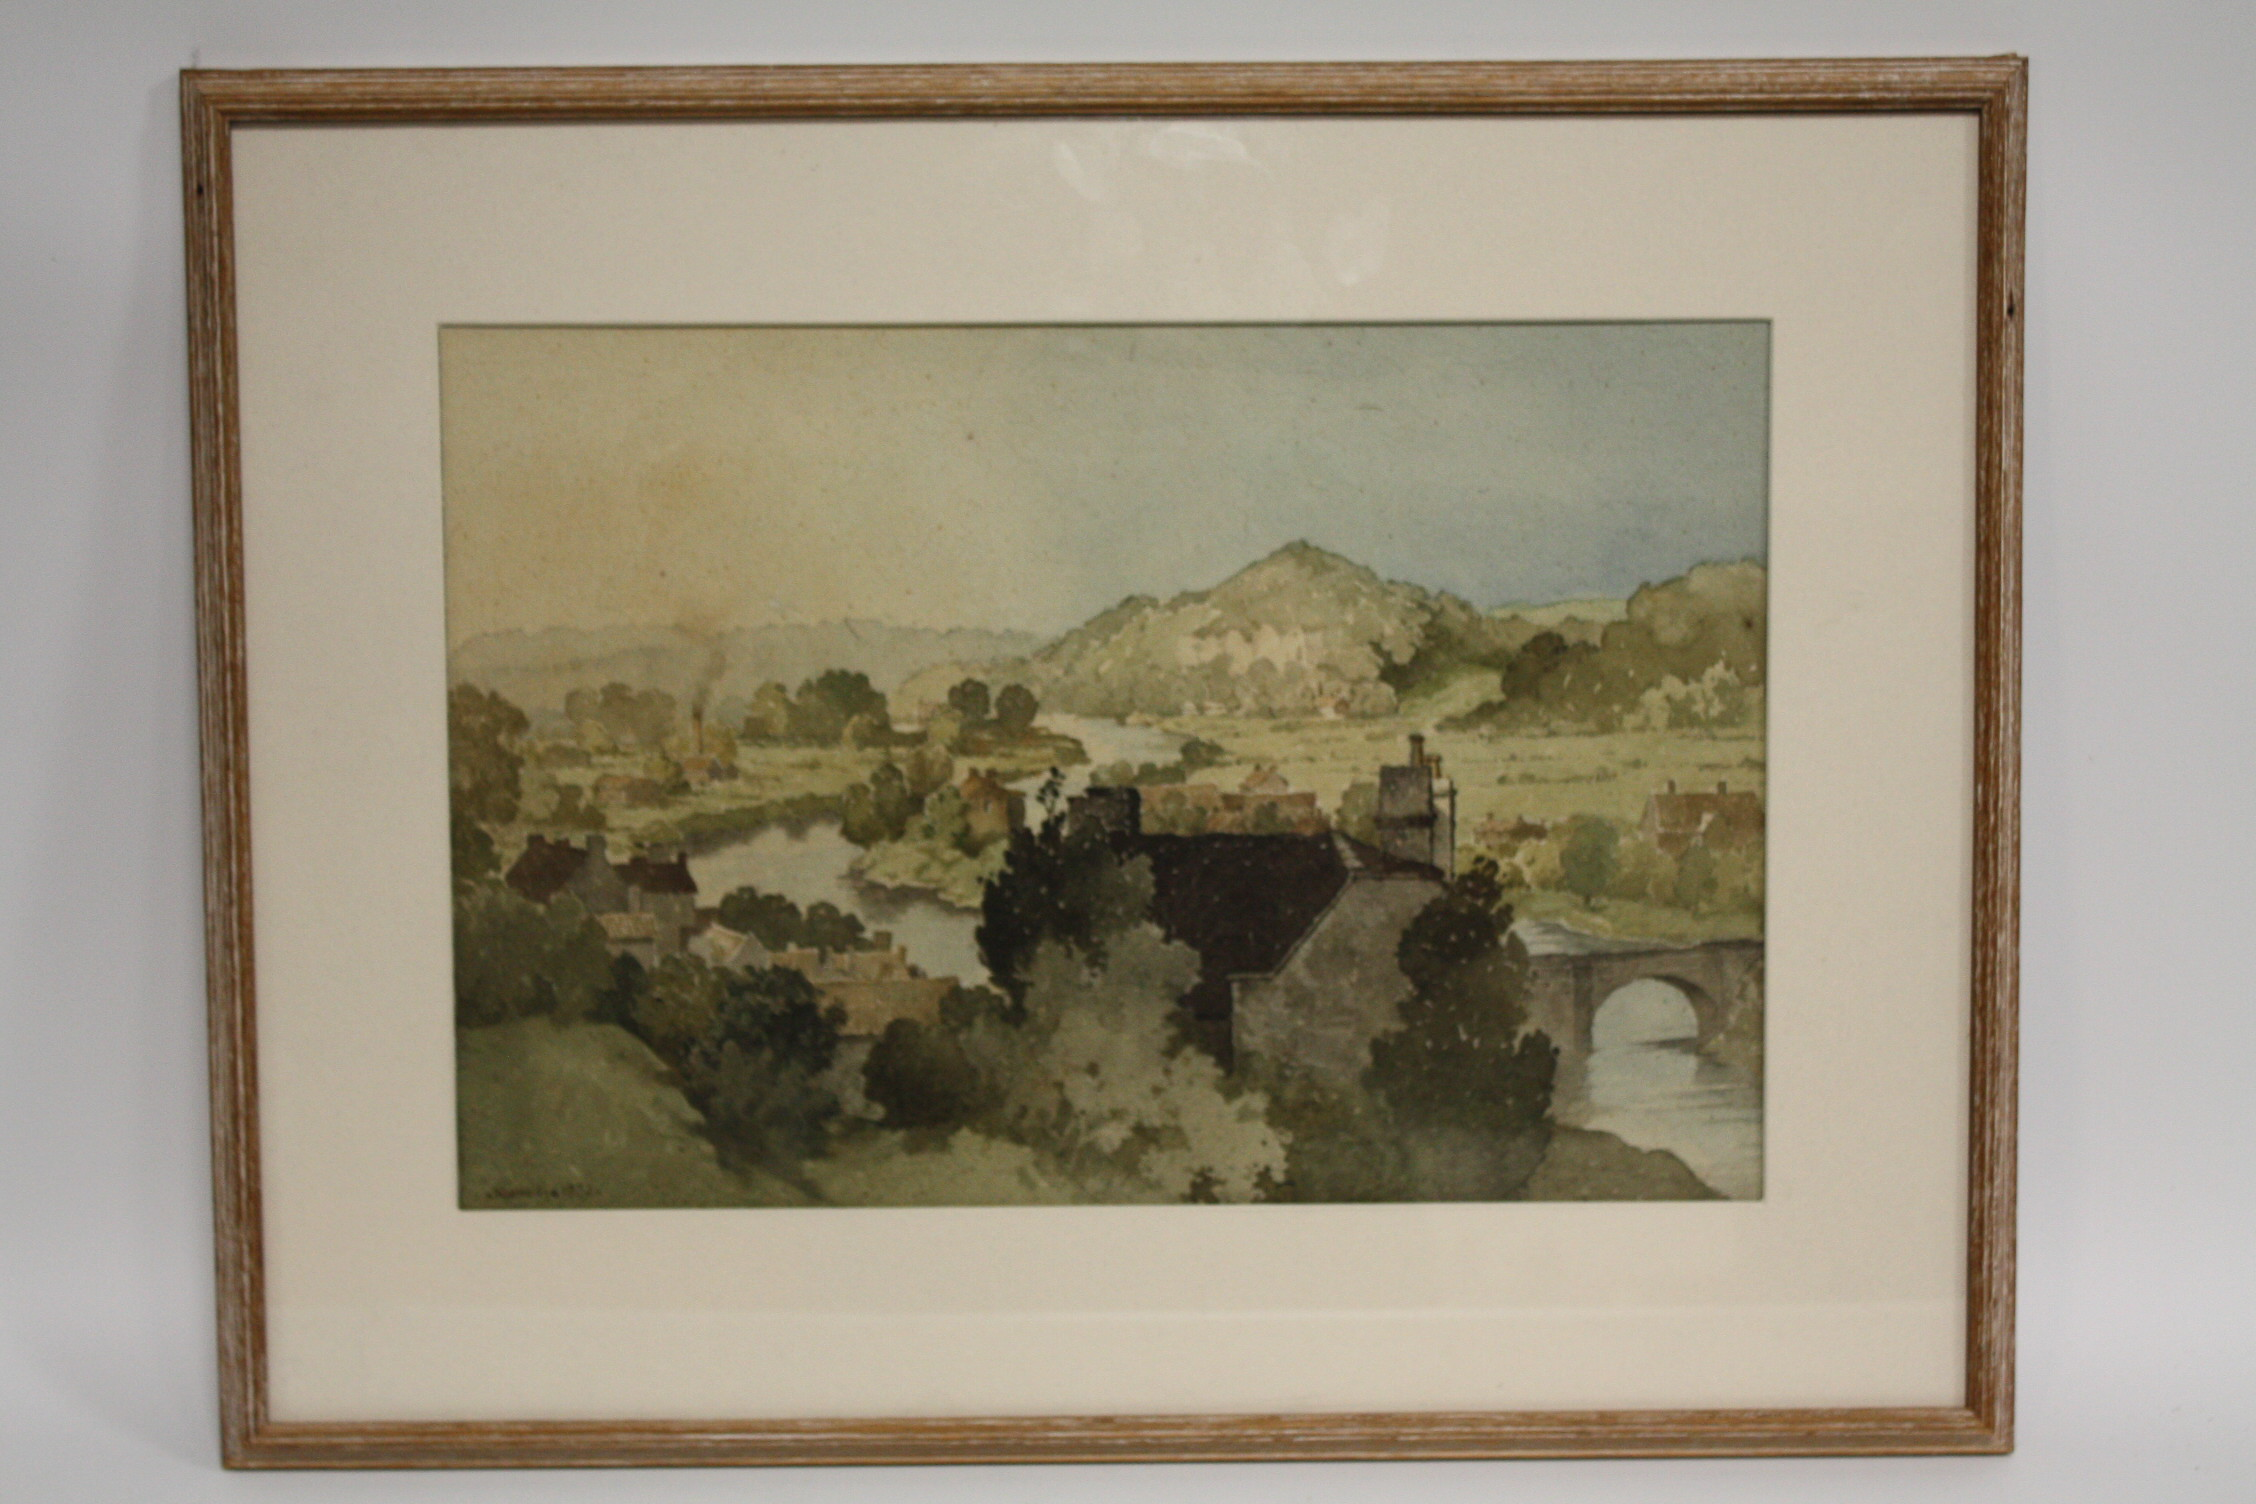 Lot 81 - BETRAM NICHOLLS (1883-1974). 'Bridgnorth' see label verso, signed and dated 1952 lower left,